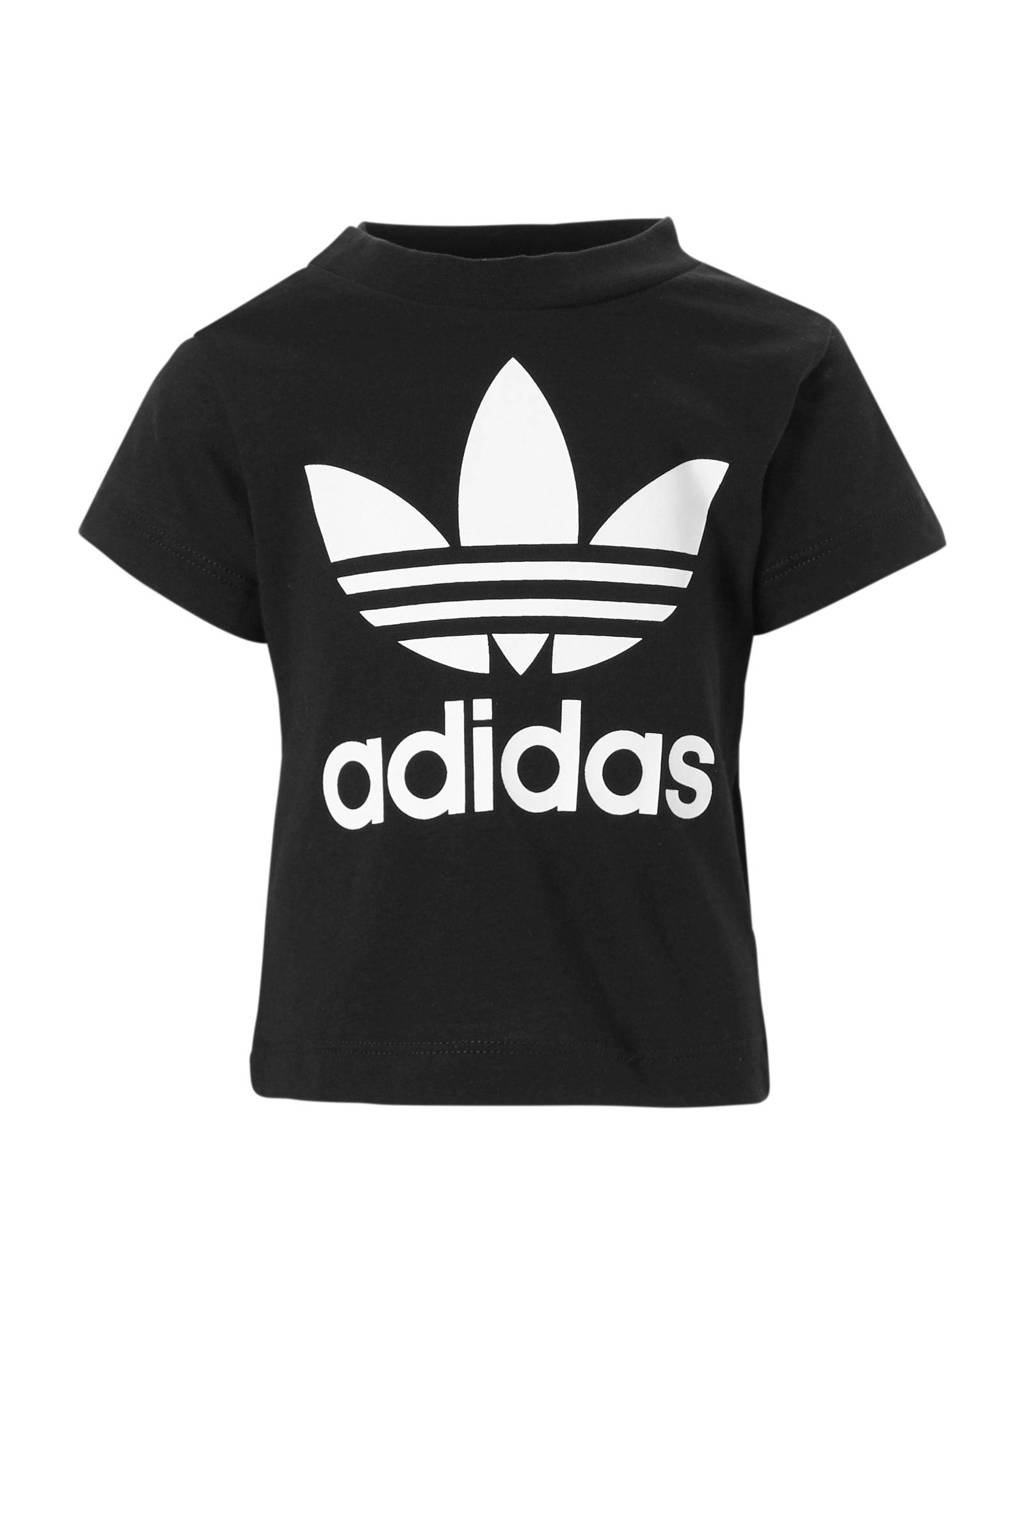 adidas Originals Adicolor T-shirt zwart, Zwart/wit